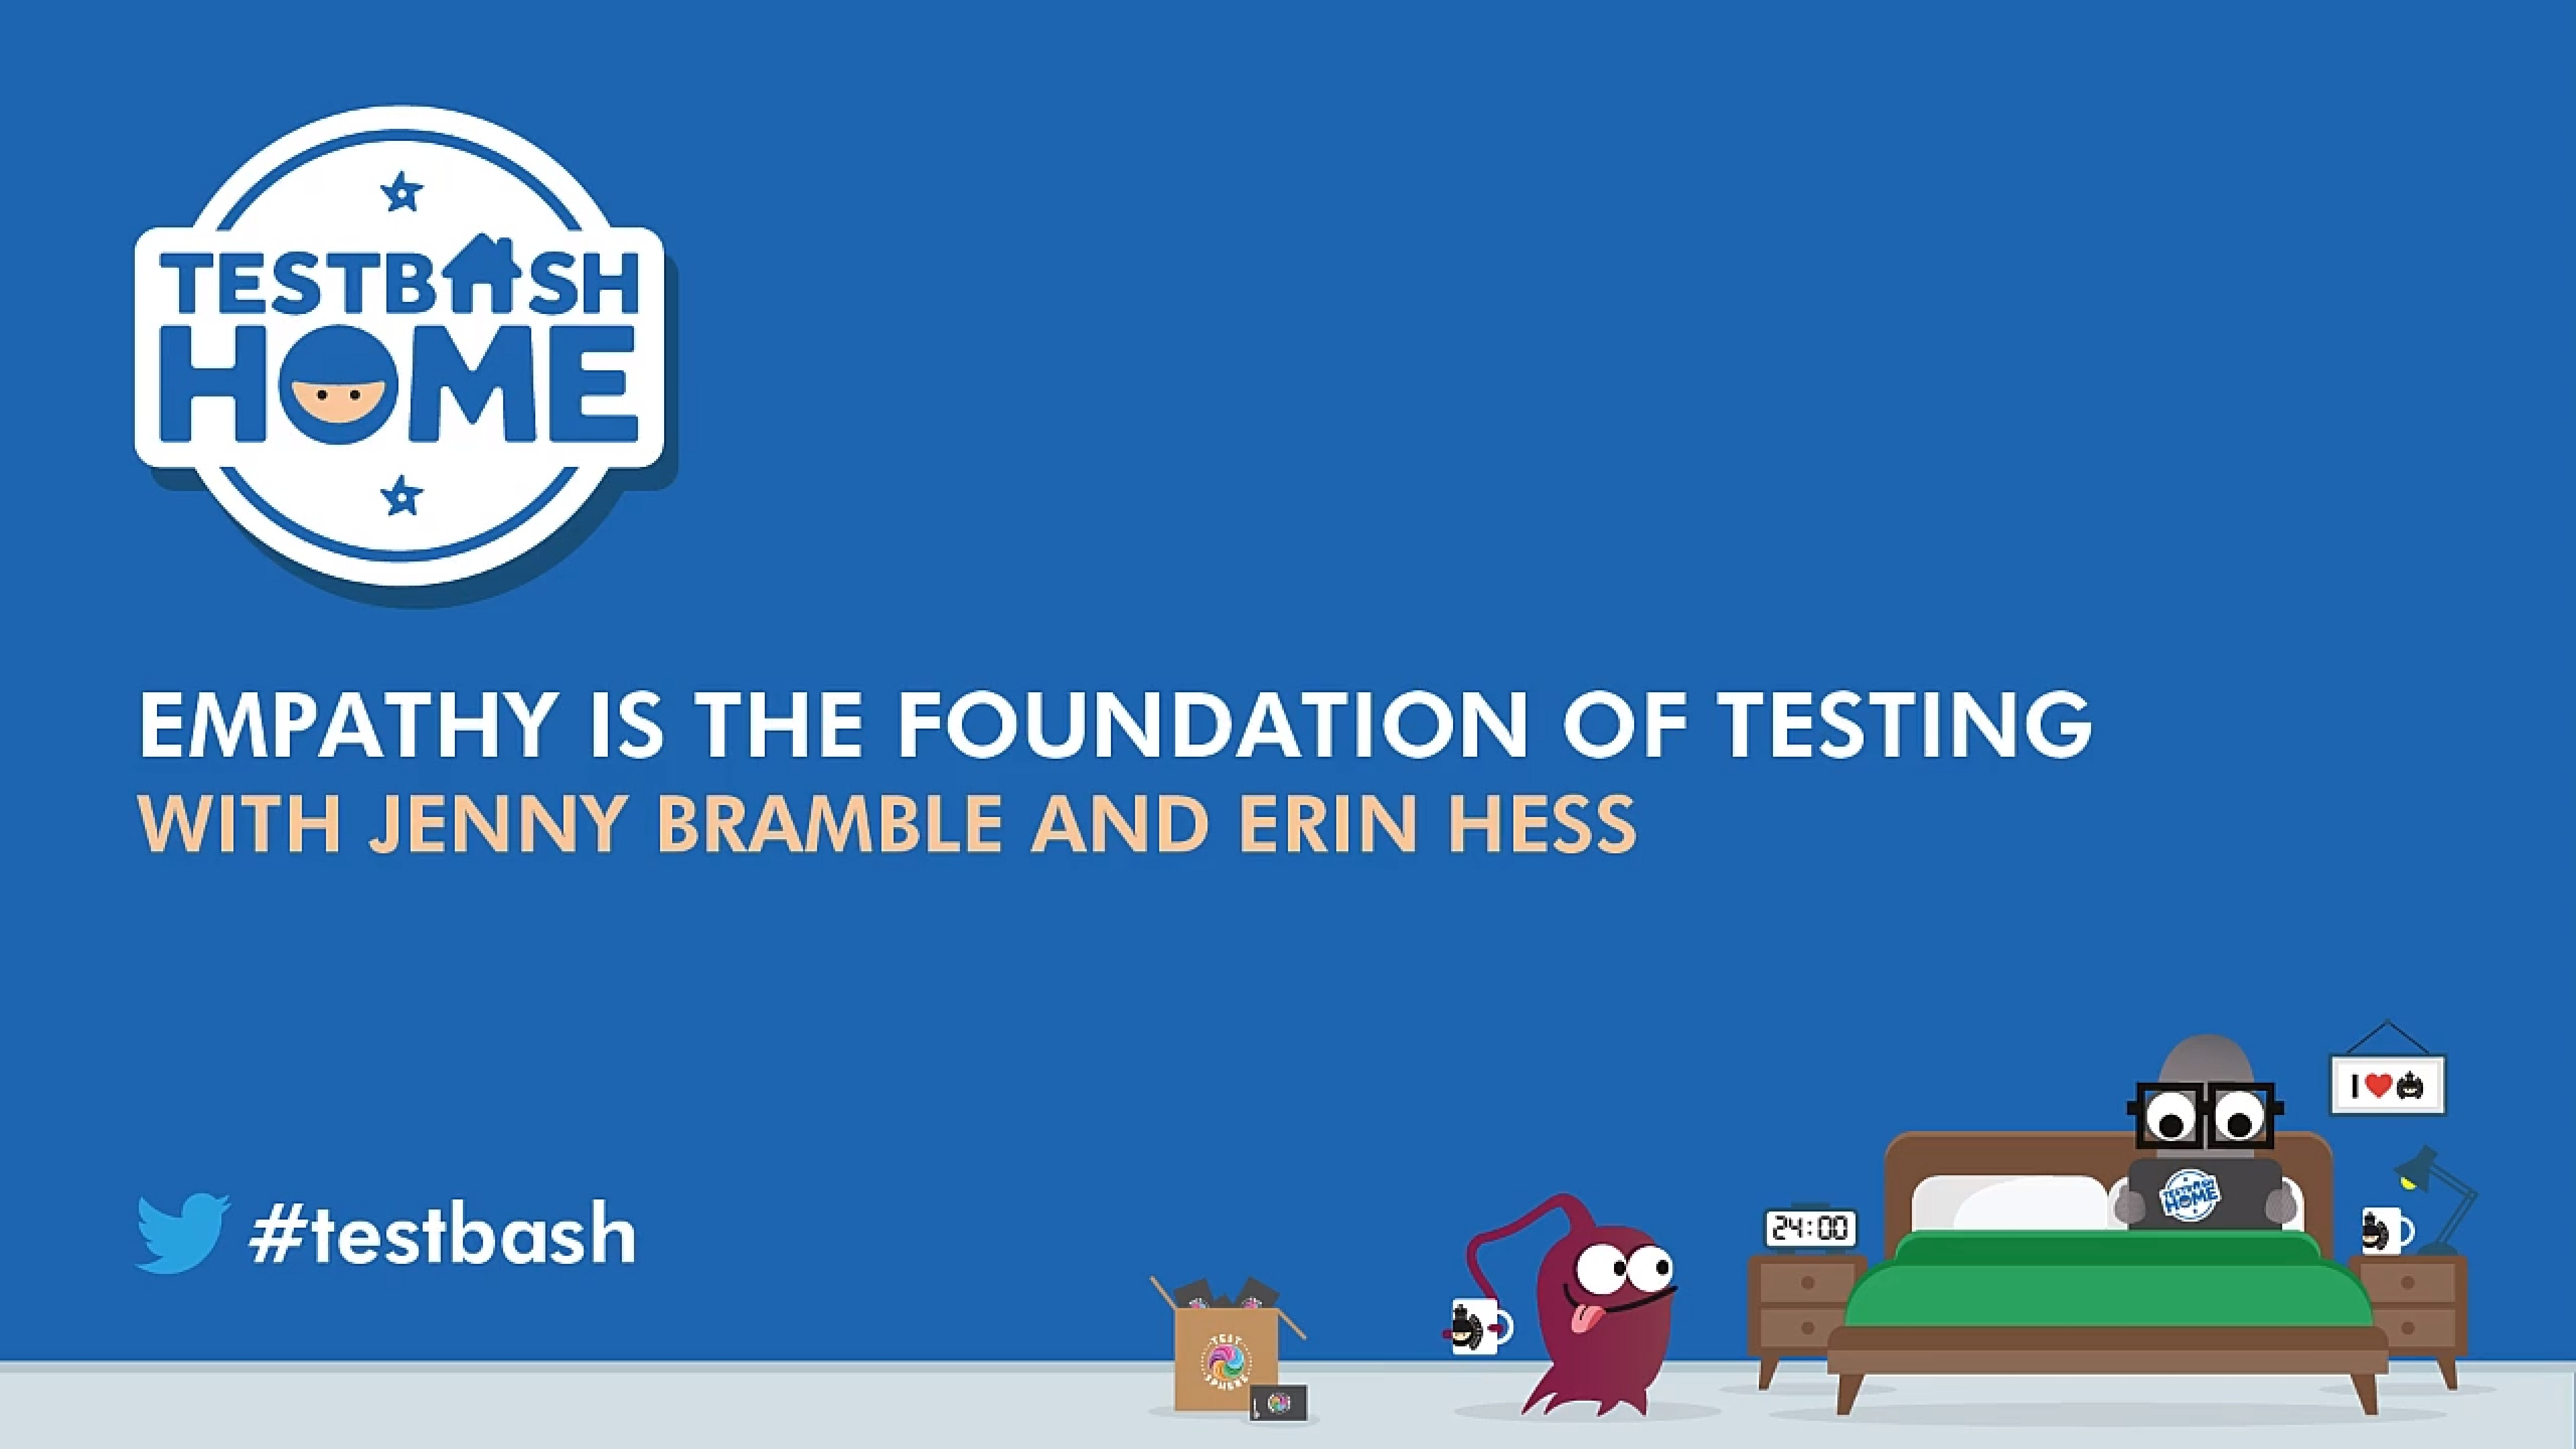 Empathy is the Foundation of Testing